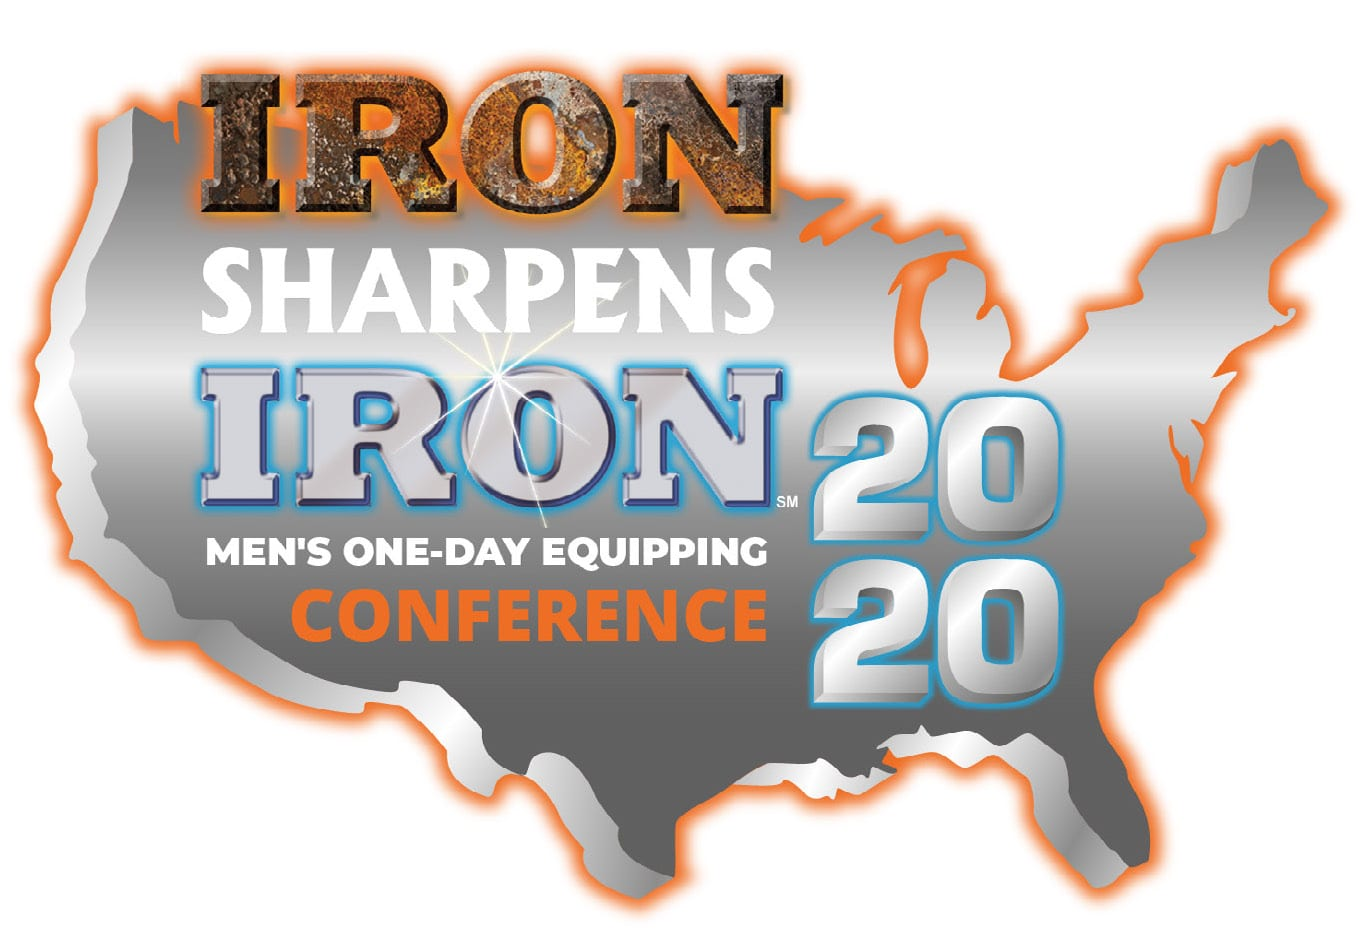 Orland Park Iron Sharpens Iron